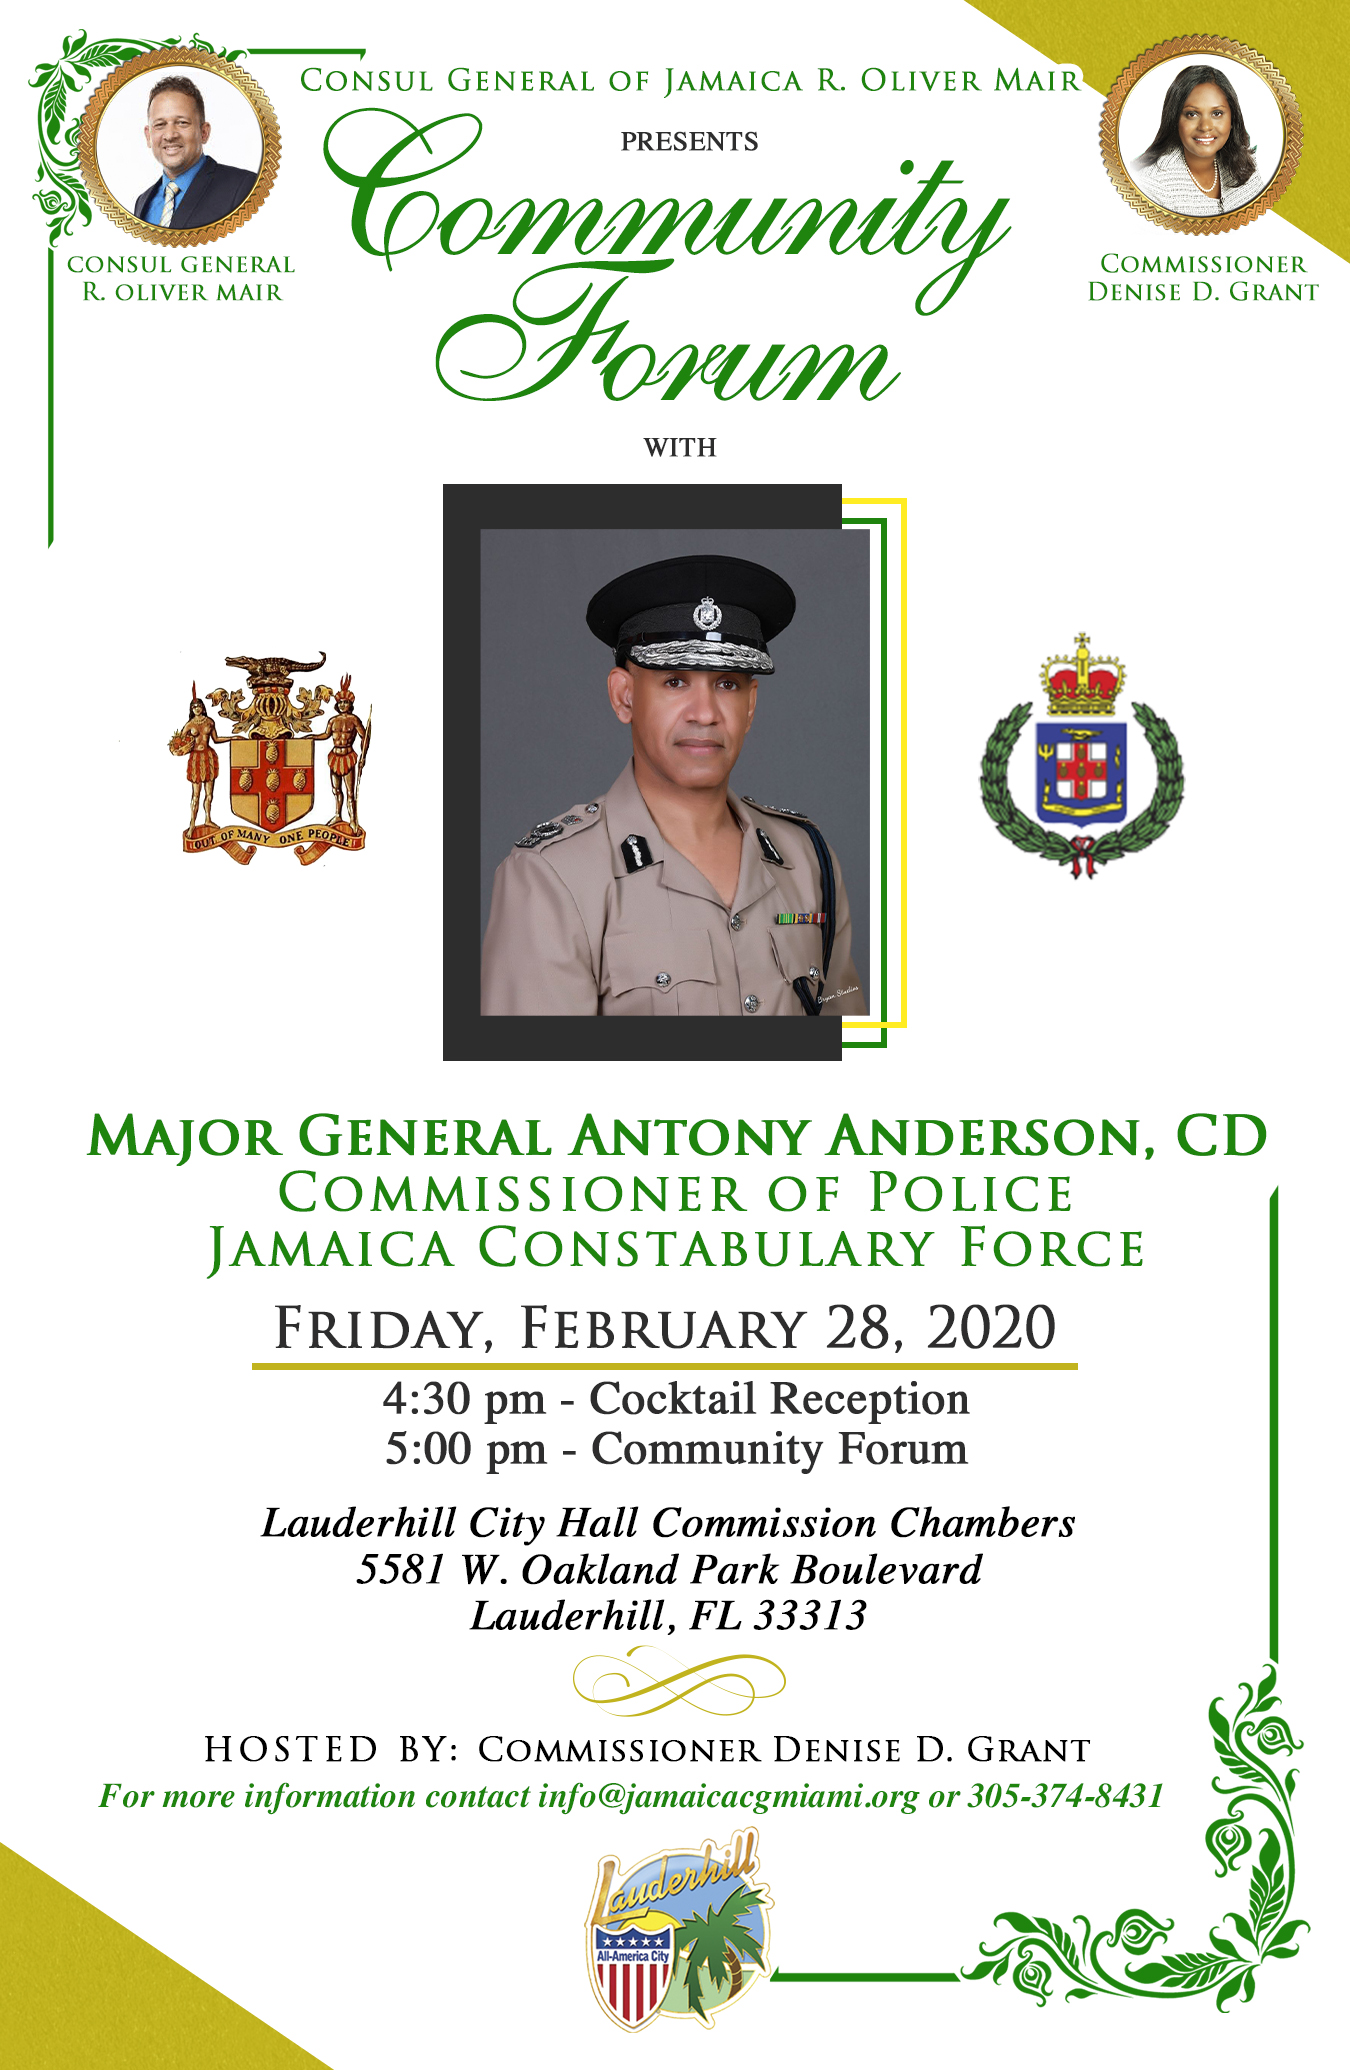 Community Forum with Consul General of Jamaica R. Oliver Mair Hostedy by Commissioner Denise D. Grant - 2-28-20